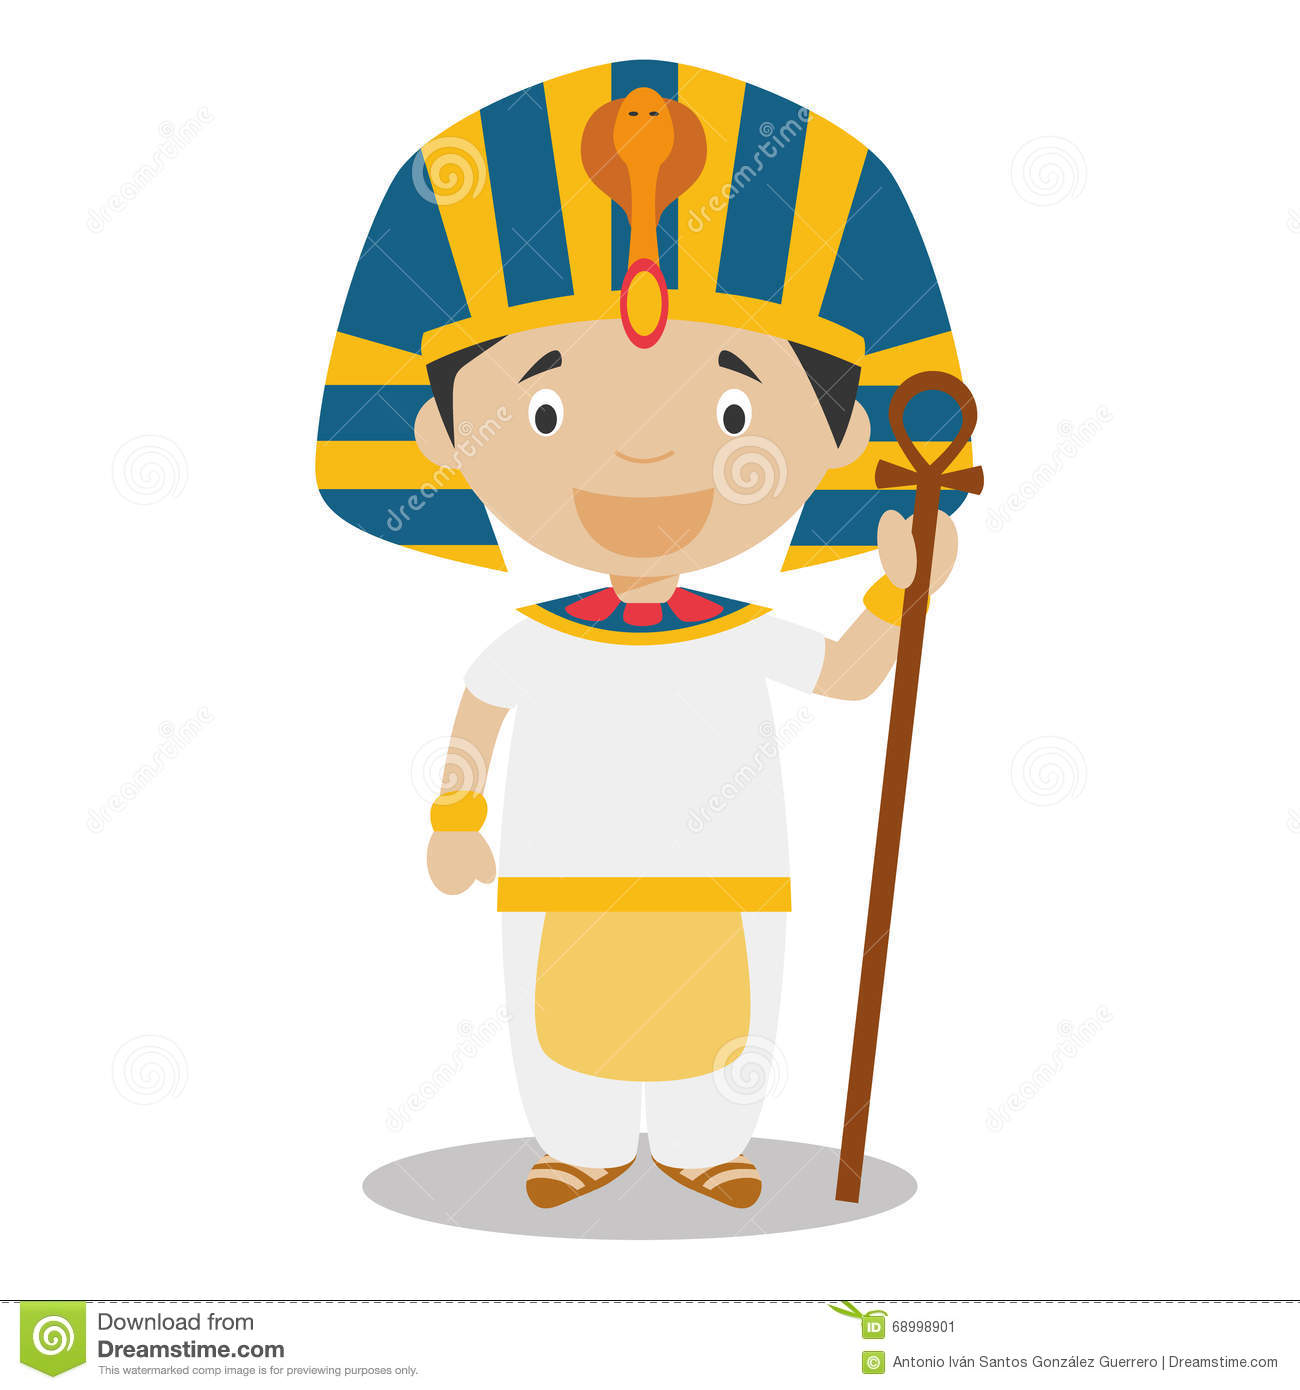 Stock Illustration Character Egypt Dressed Traditional Way As Pharaoh Ancient Egypt Vector Illustration Kids World Image68998901